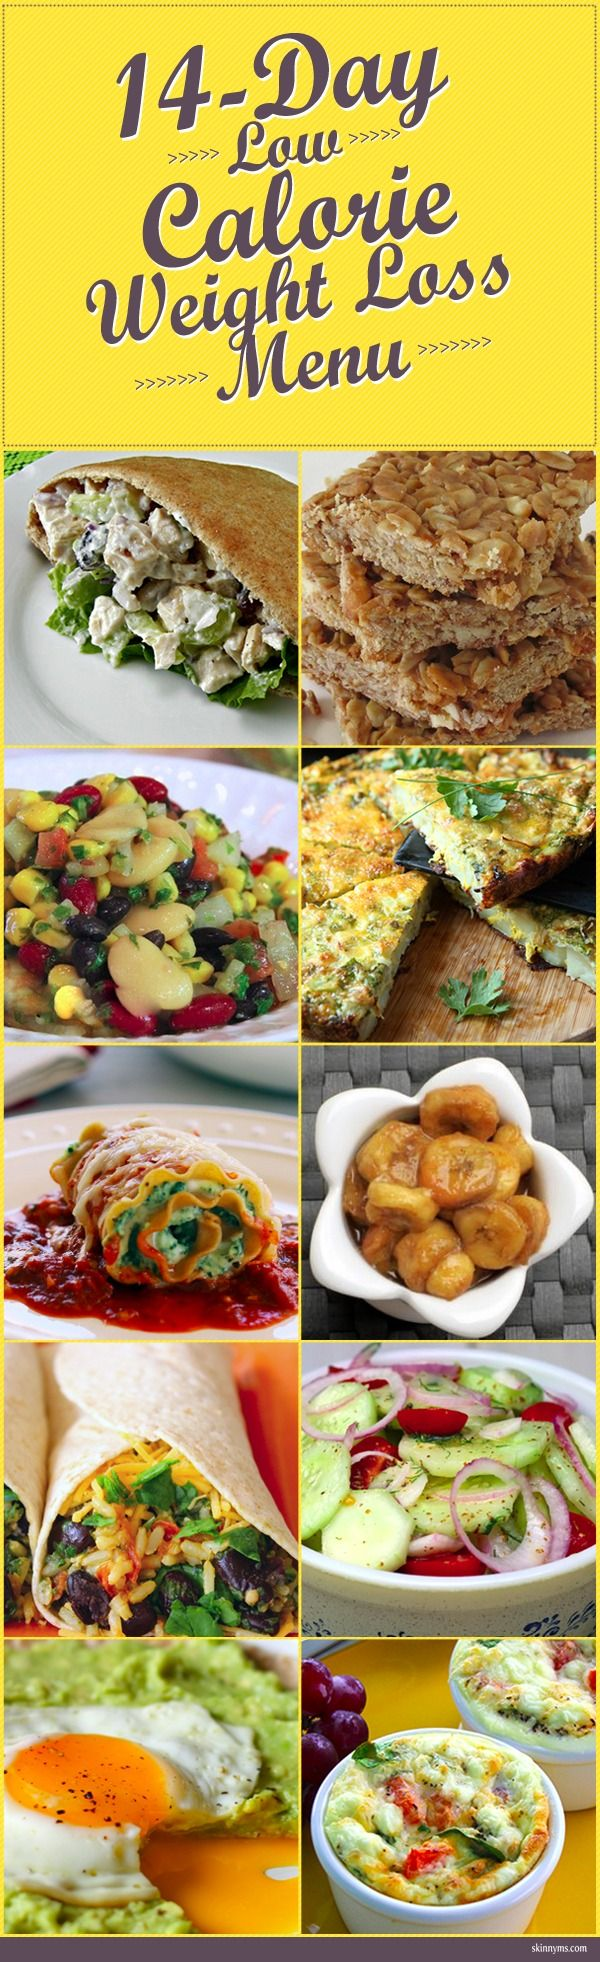 Enjoy a 14 Day Low Calorie Weight Loss Menu! Don't skip on delicious :) #weightloss #menu #lowcalorie